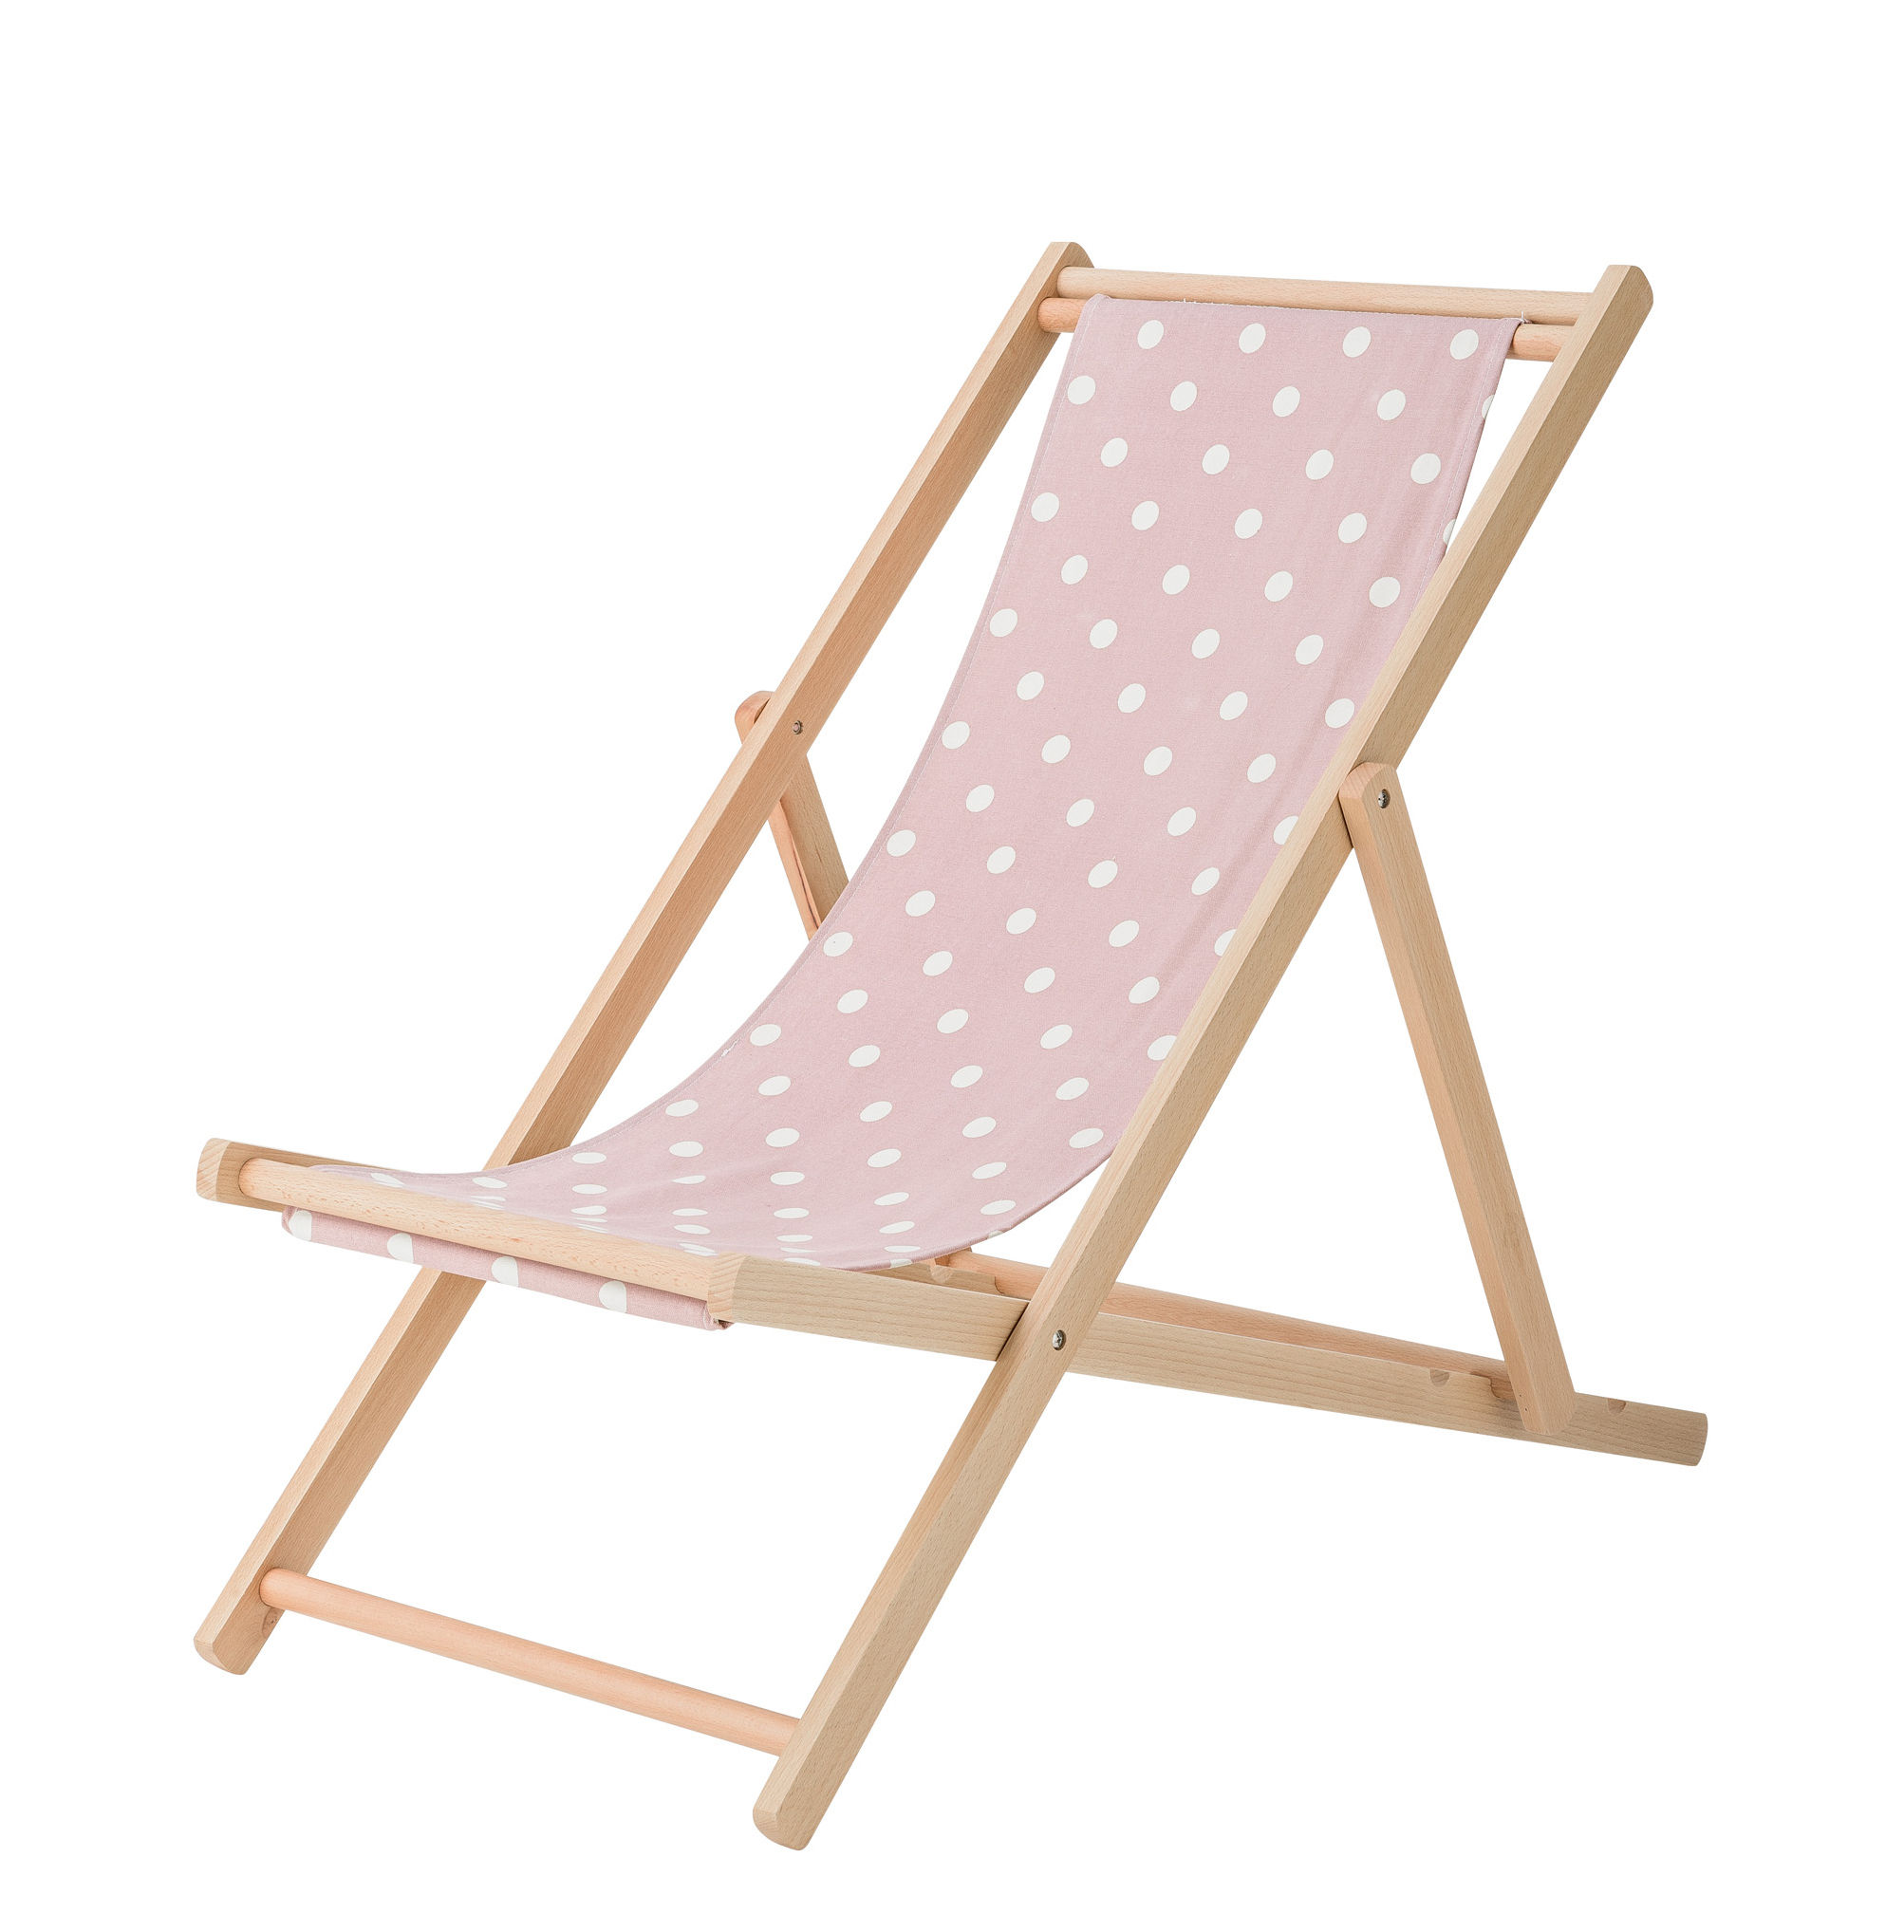 Outdoor - Sun Loungers & Hammocks - Reclining chair - / Foldable & adjustable by Bloomingville - Black polka-dots - Cotton, Natural beechwood